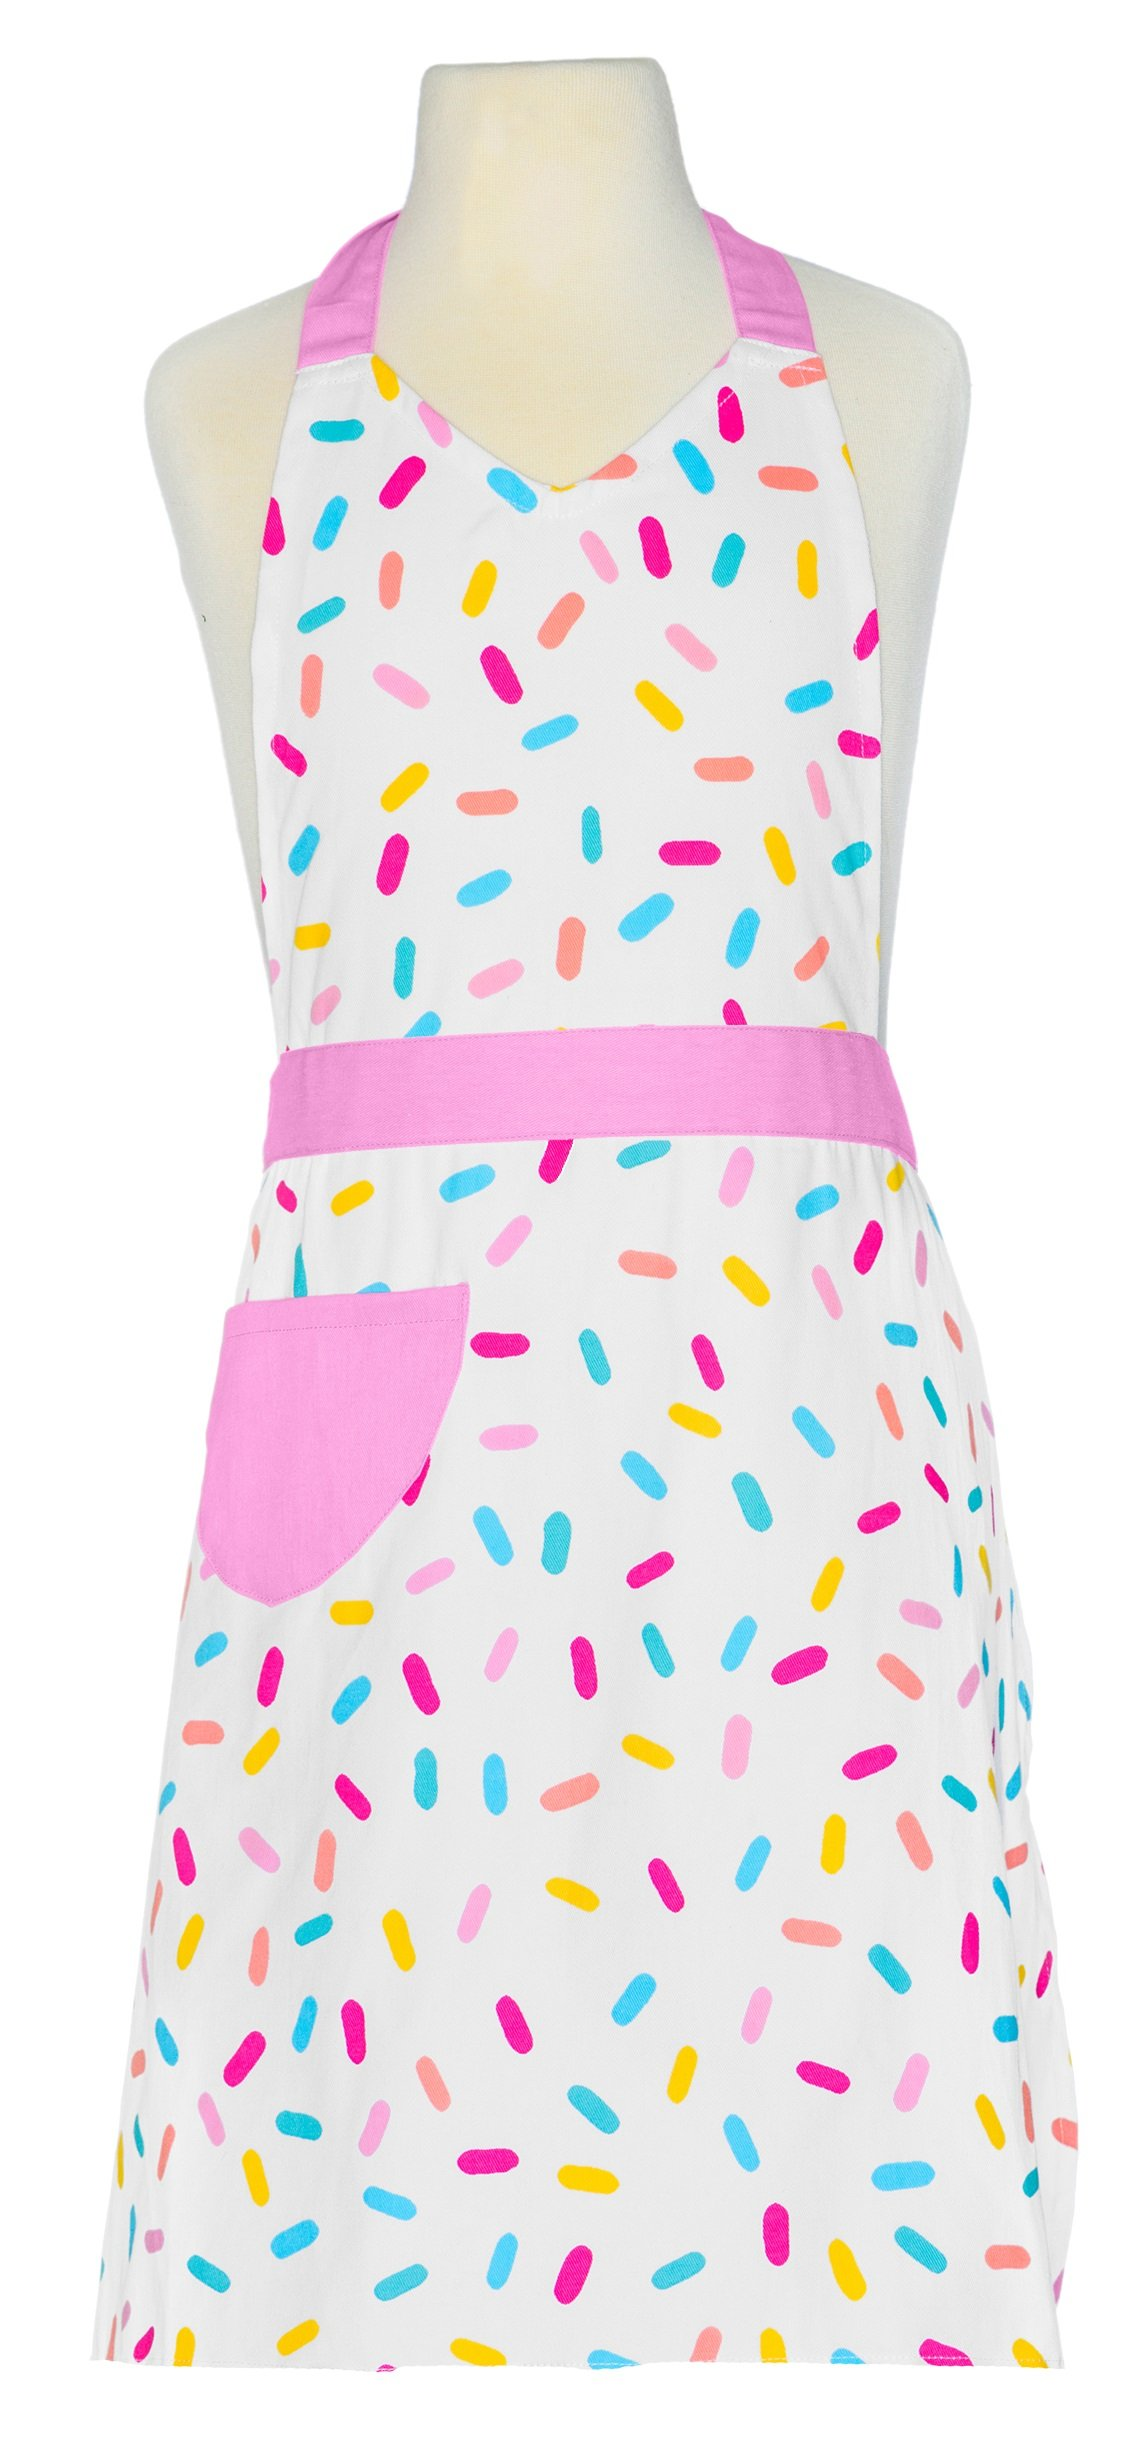 Handstand Kitchen Mother and Daughter Sprinkles 100% Cotton Apron Gift Set by Handstand Kitchen (Image #3)